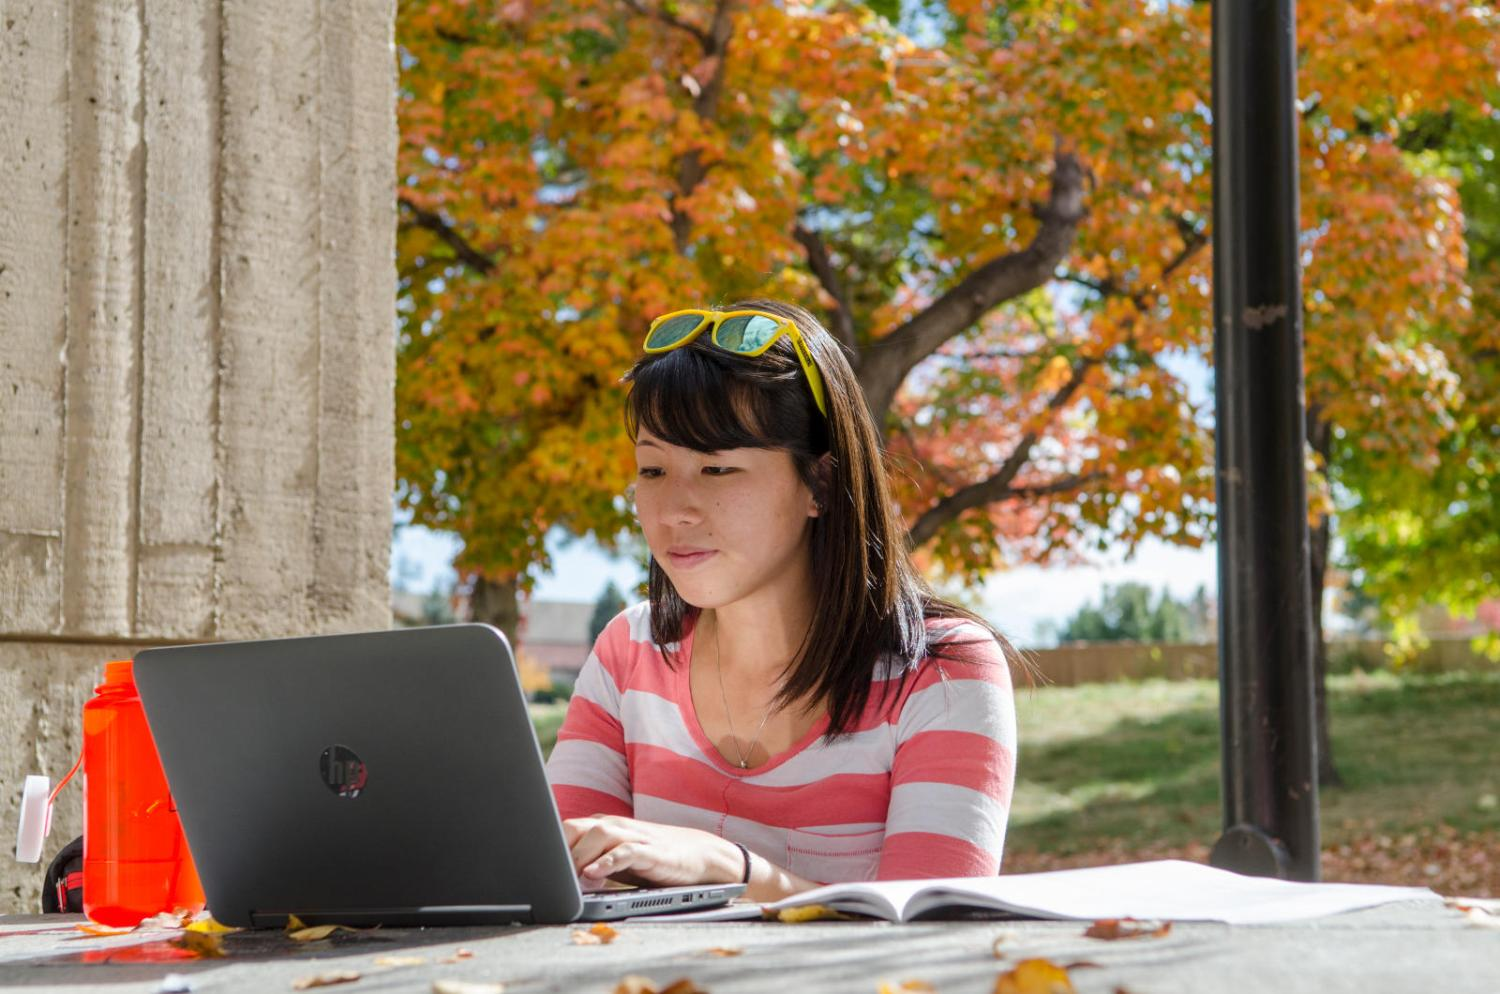 Student on laptop with autumn tree in background.